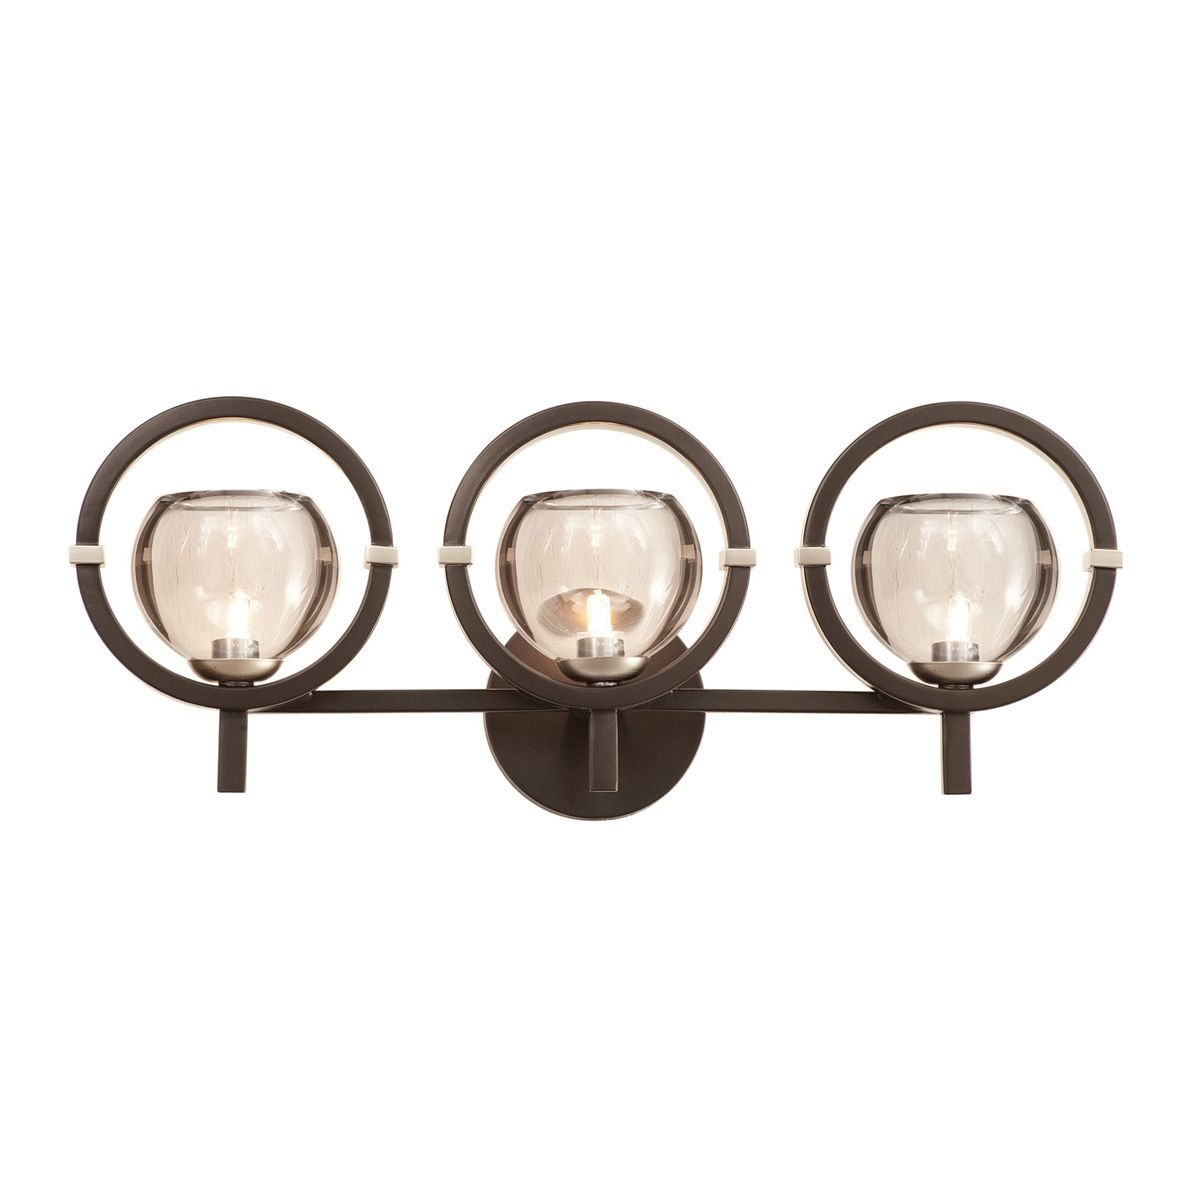 Lunaire 3 Light Wall Bracket